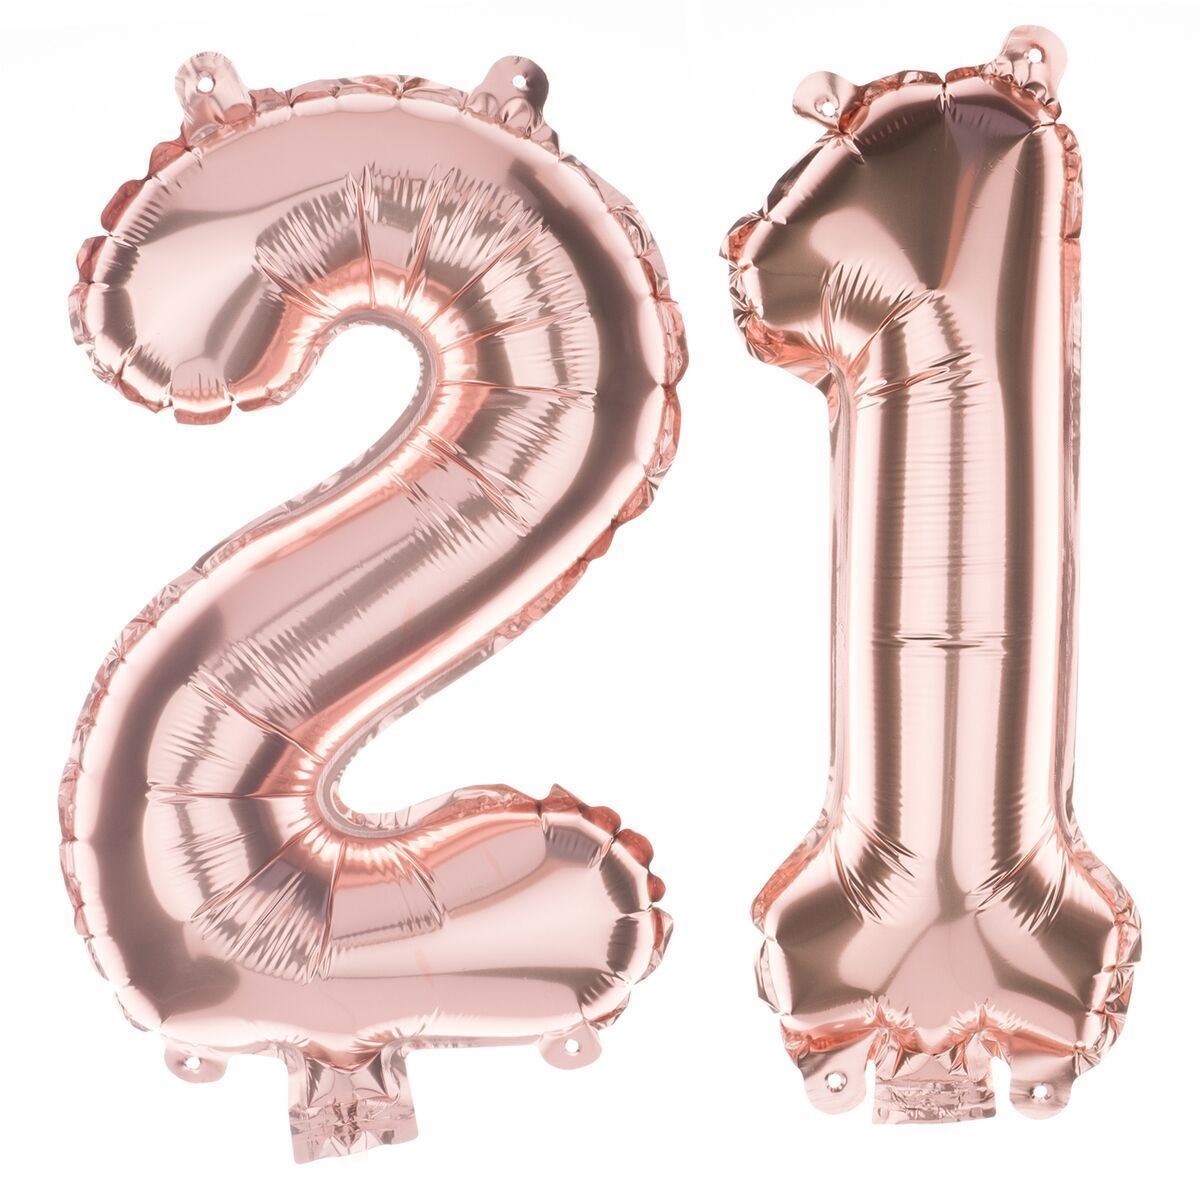 21 Non Floating Number Balloons